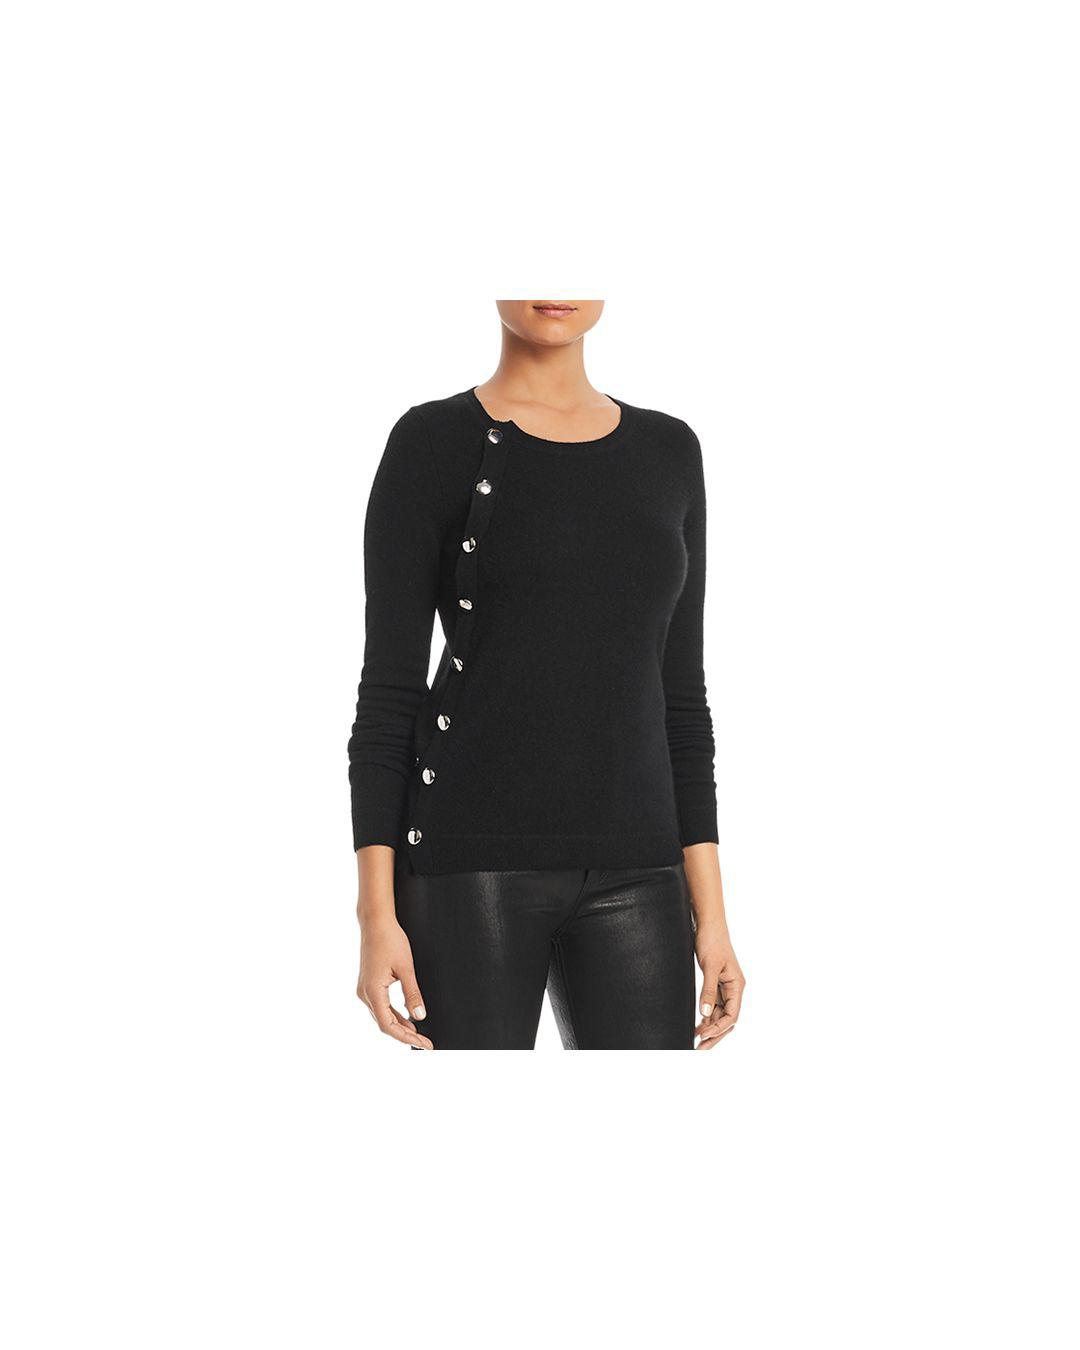 C By Bloomingdale s Asymmetric Button Cashmere Sweater in Black - Lyst 568cd9071